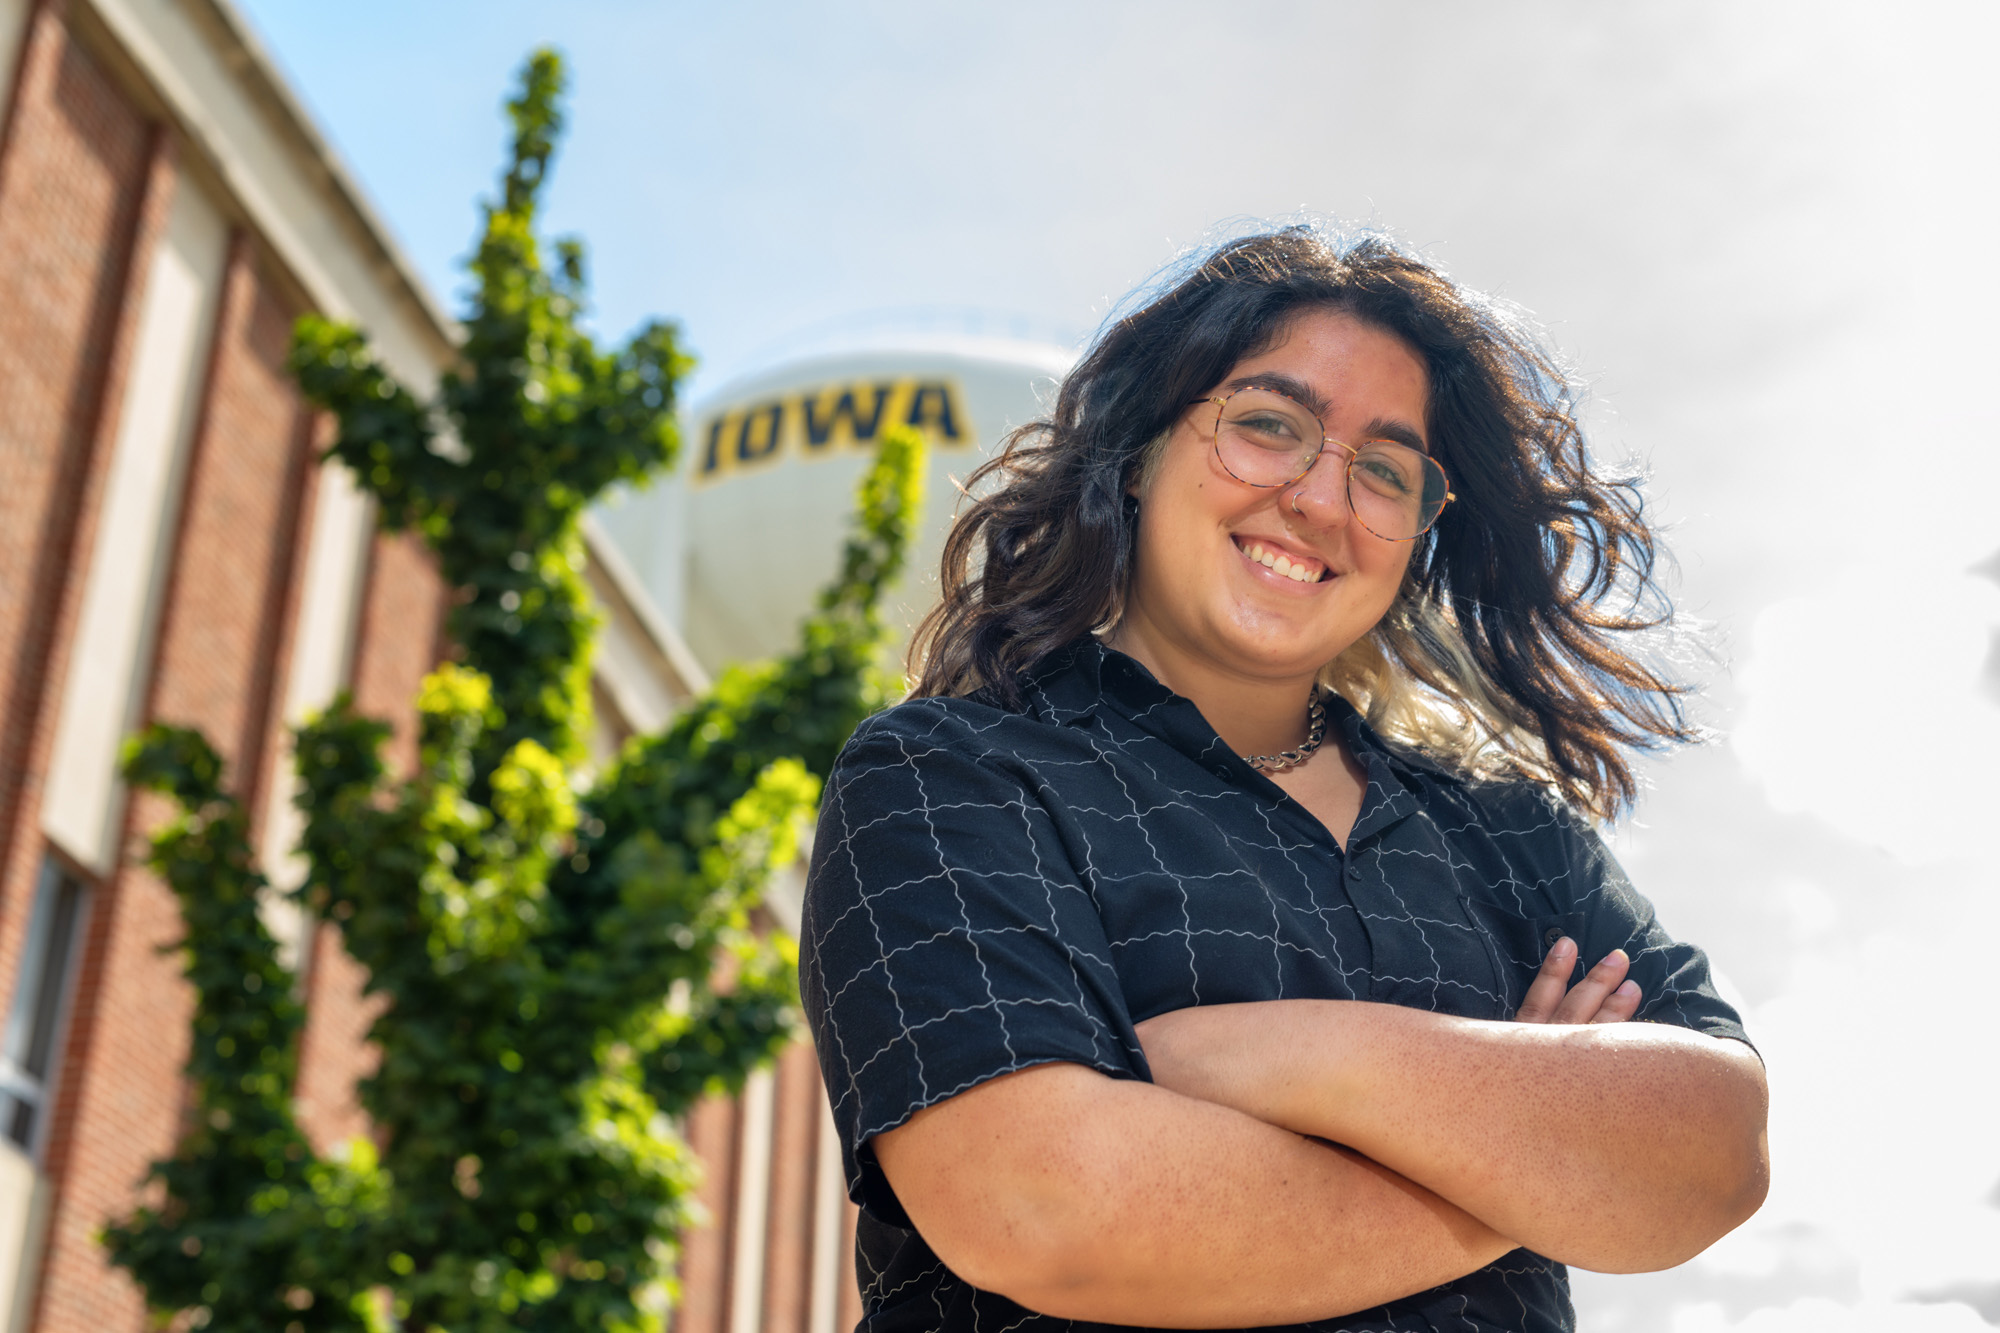 University of Iowa graduate student Bianca Robles-Munoz standing on the Iowa campus, near the Wendell Johnson Speech and Hearing Clinic